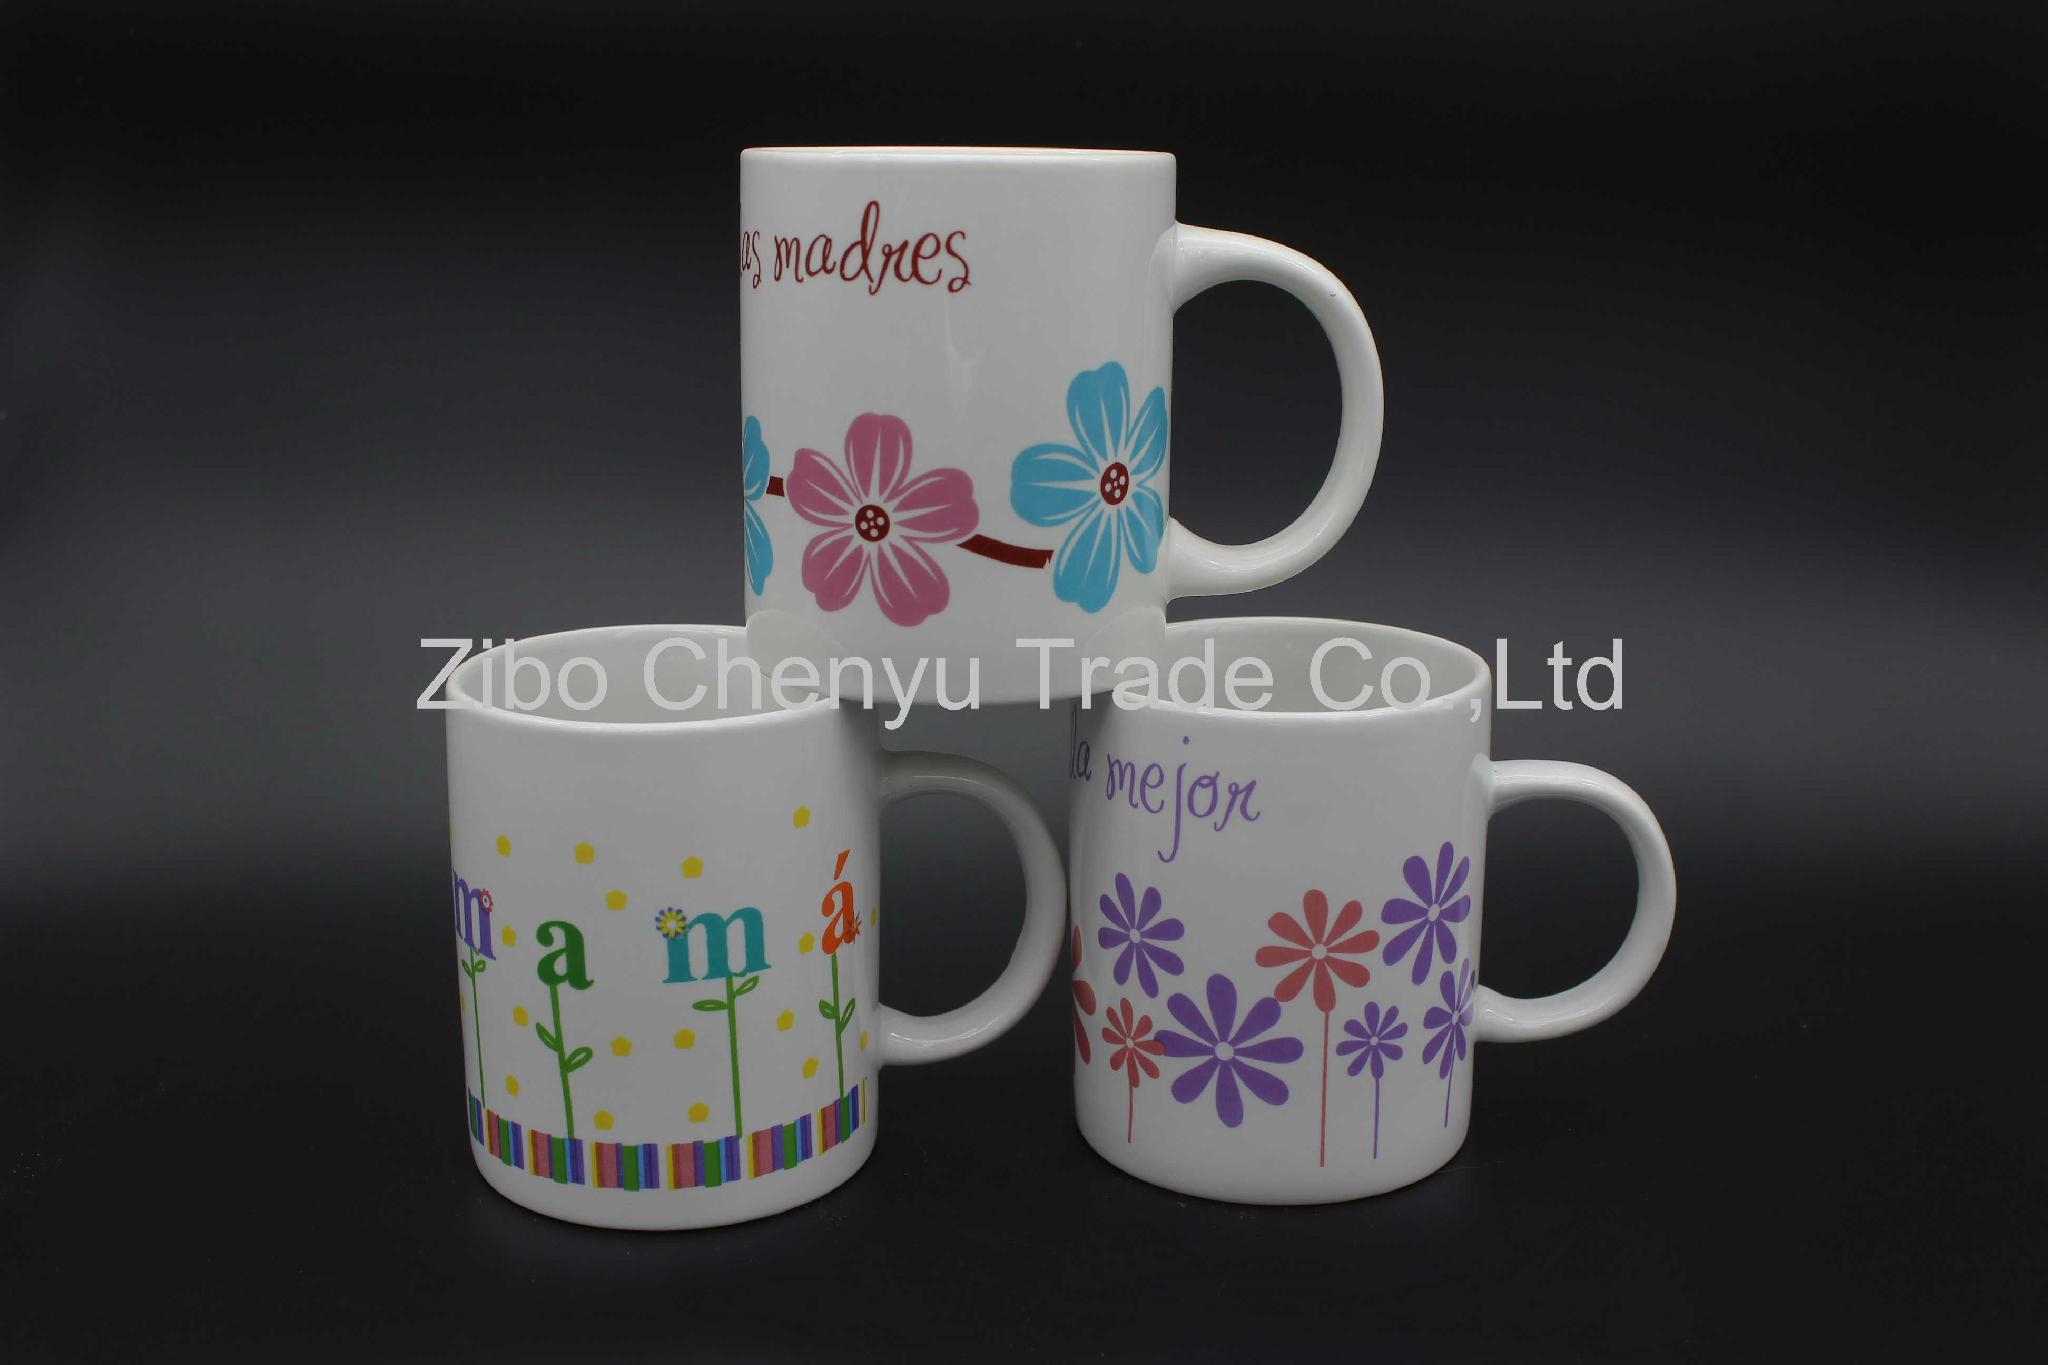 decal porcelain coffee mug gift product promotion can be OEM 1